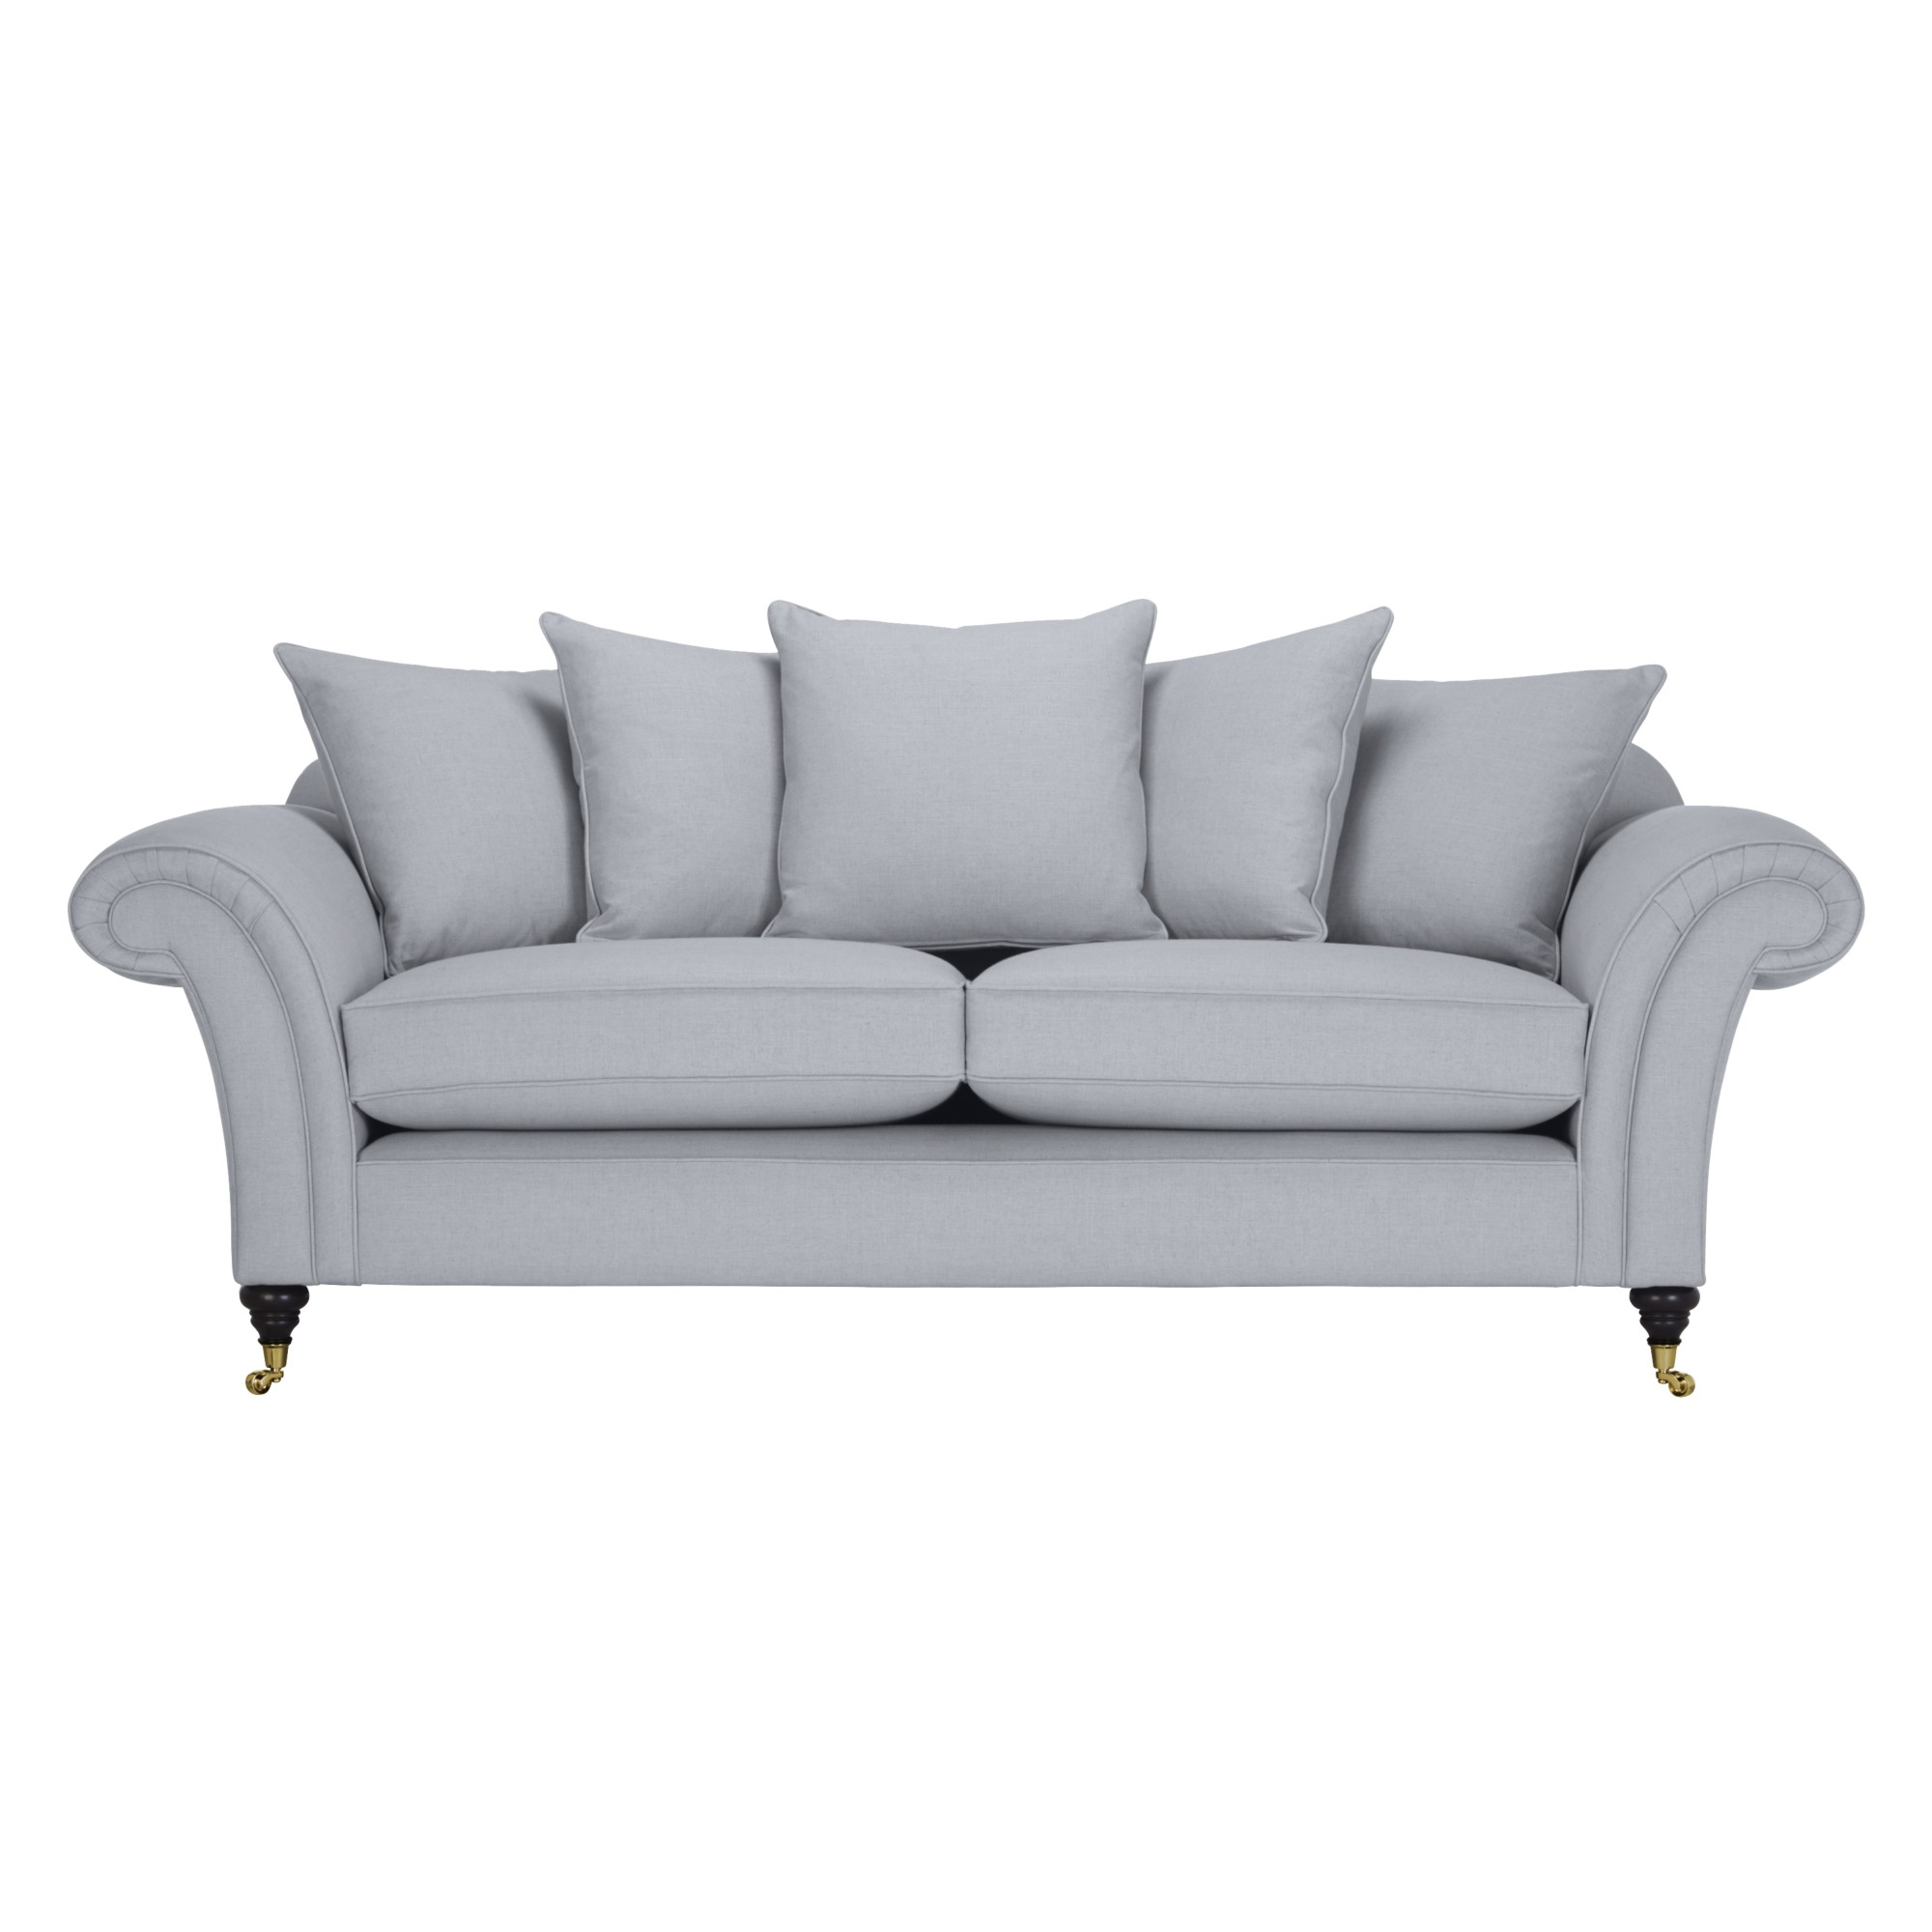 Beaumont Beds Sofas